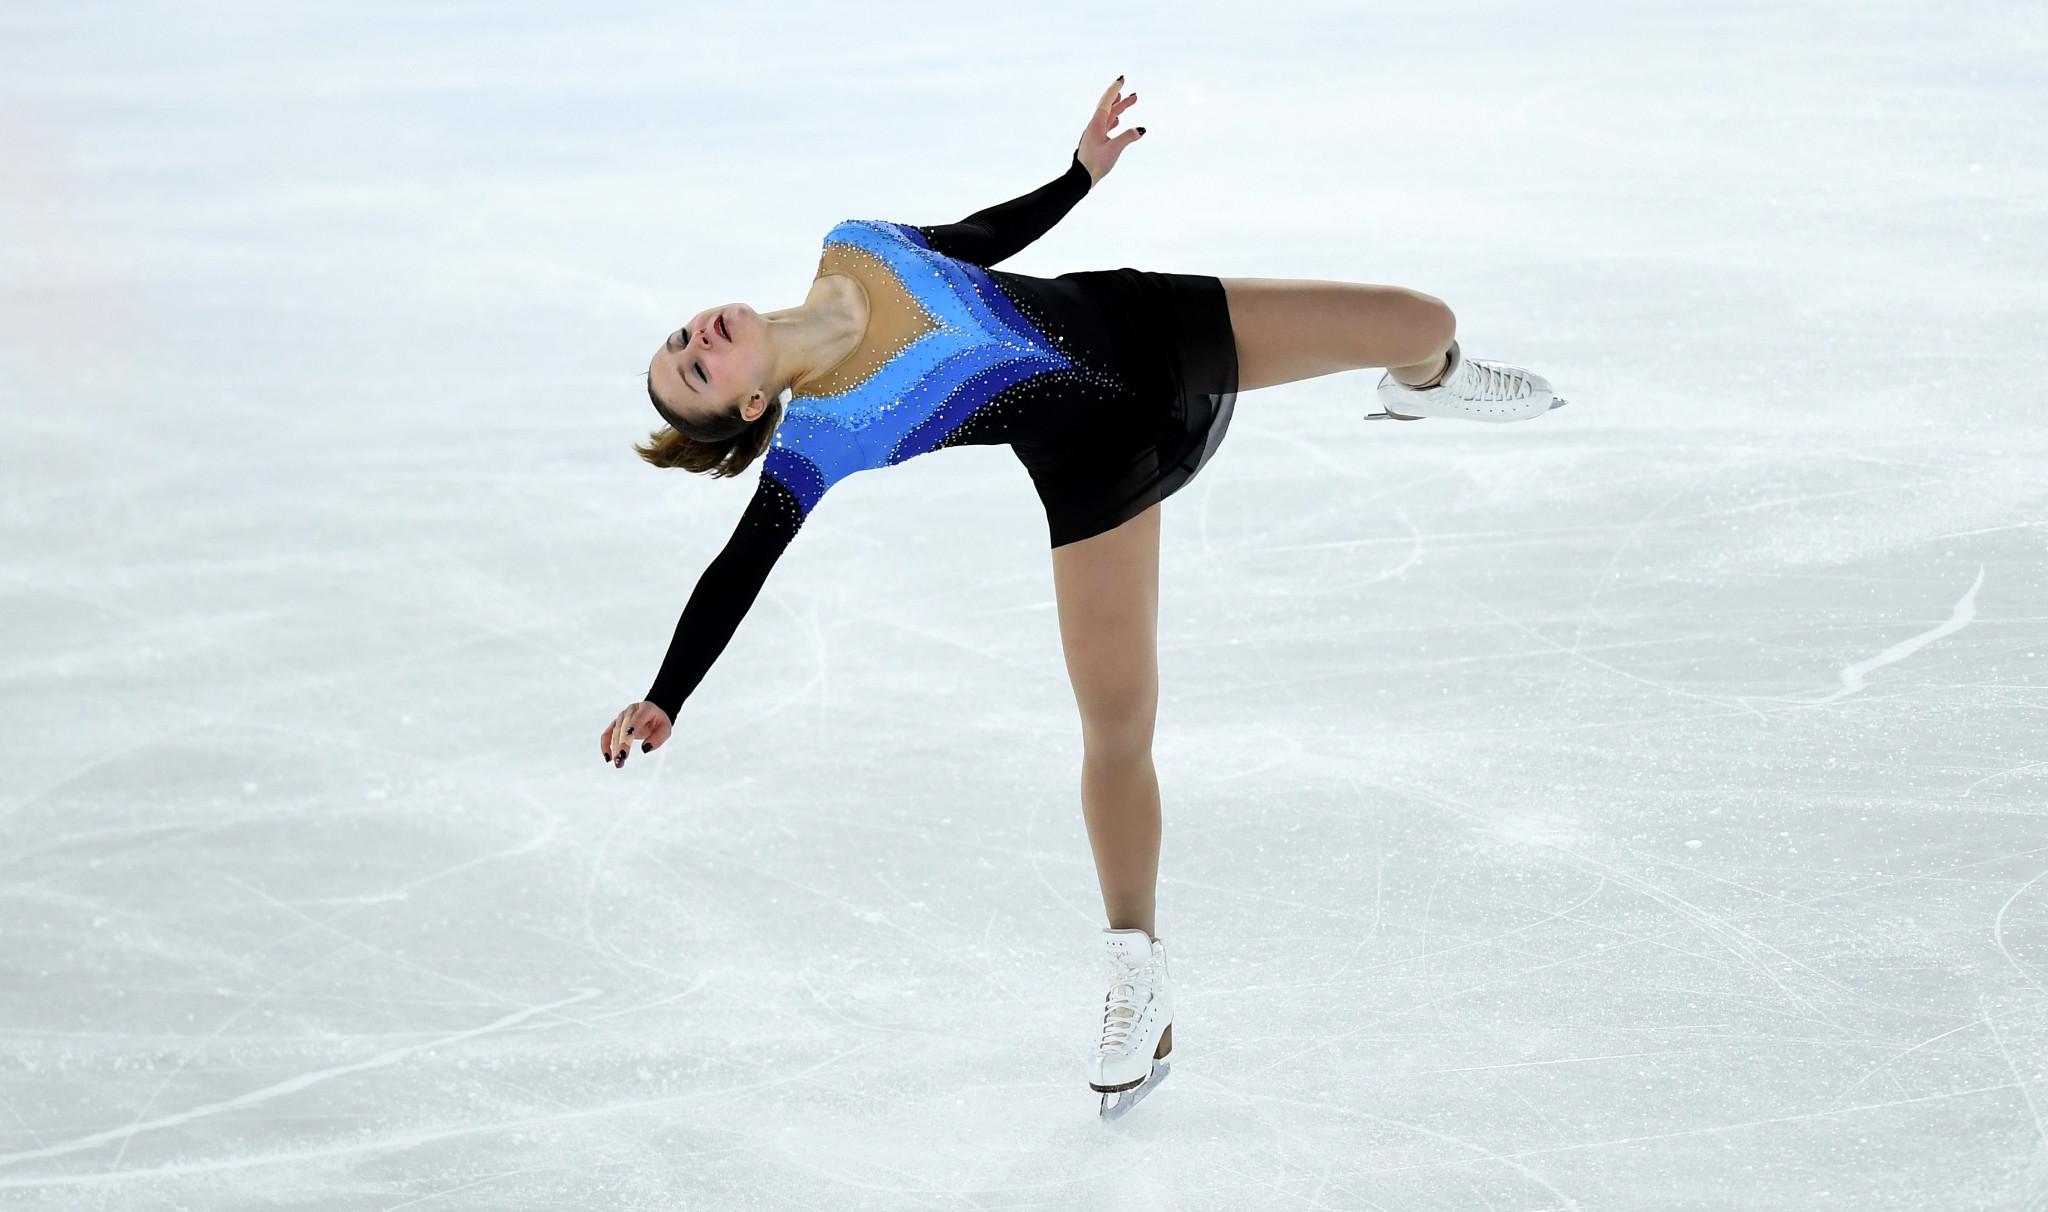 The free skate took place to decide the competition ©Getty Images